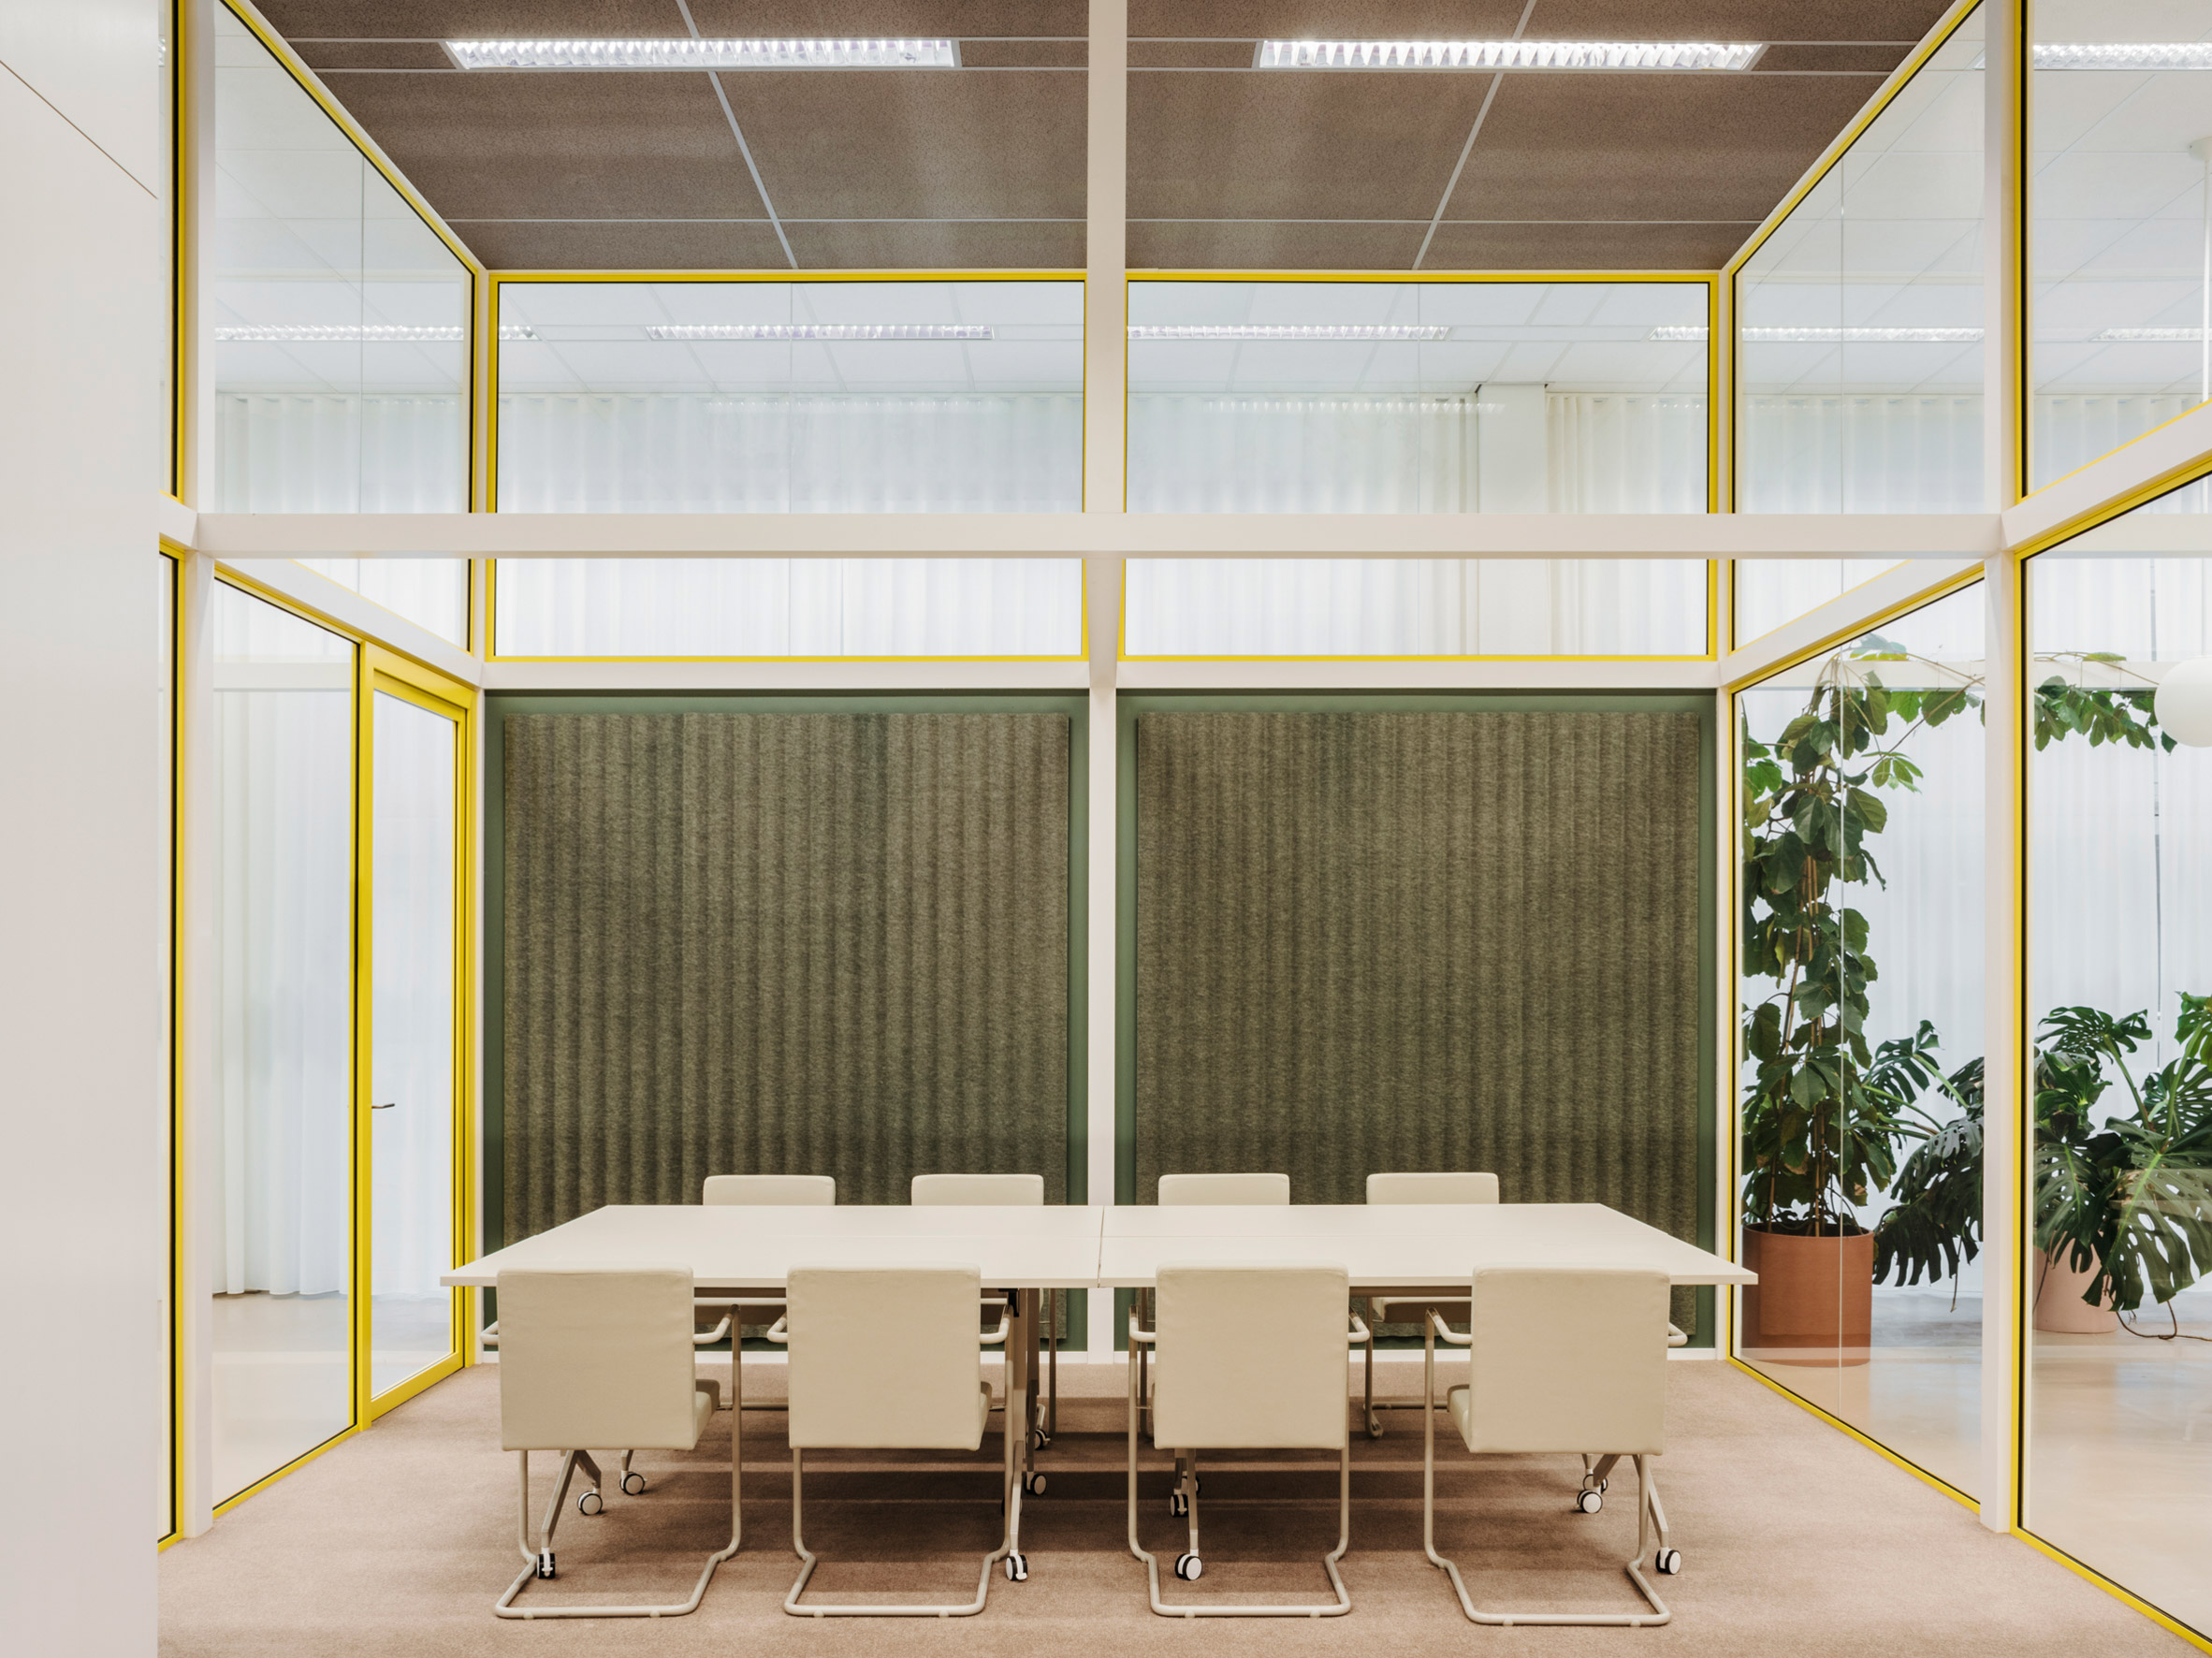 Meeting table in glass room with felt wall